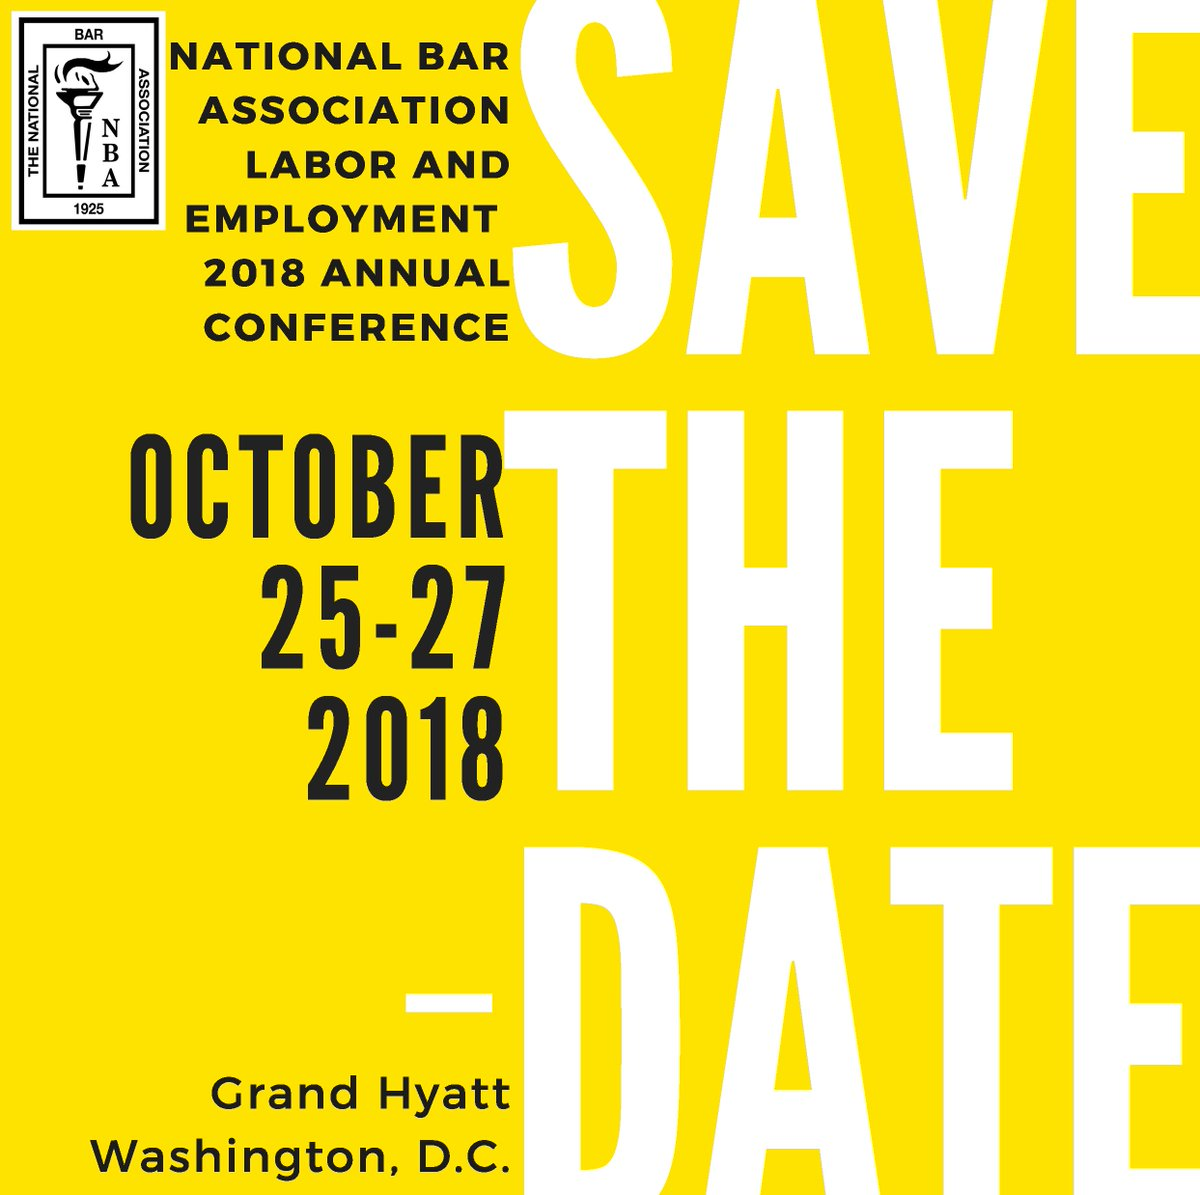 National Bar Assoc on Twitter SAVE THE DATE The National Bar Association Labor and